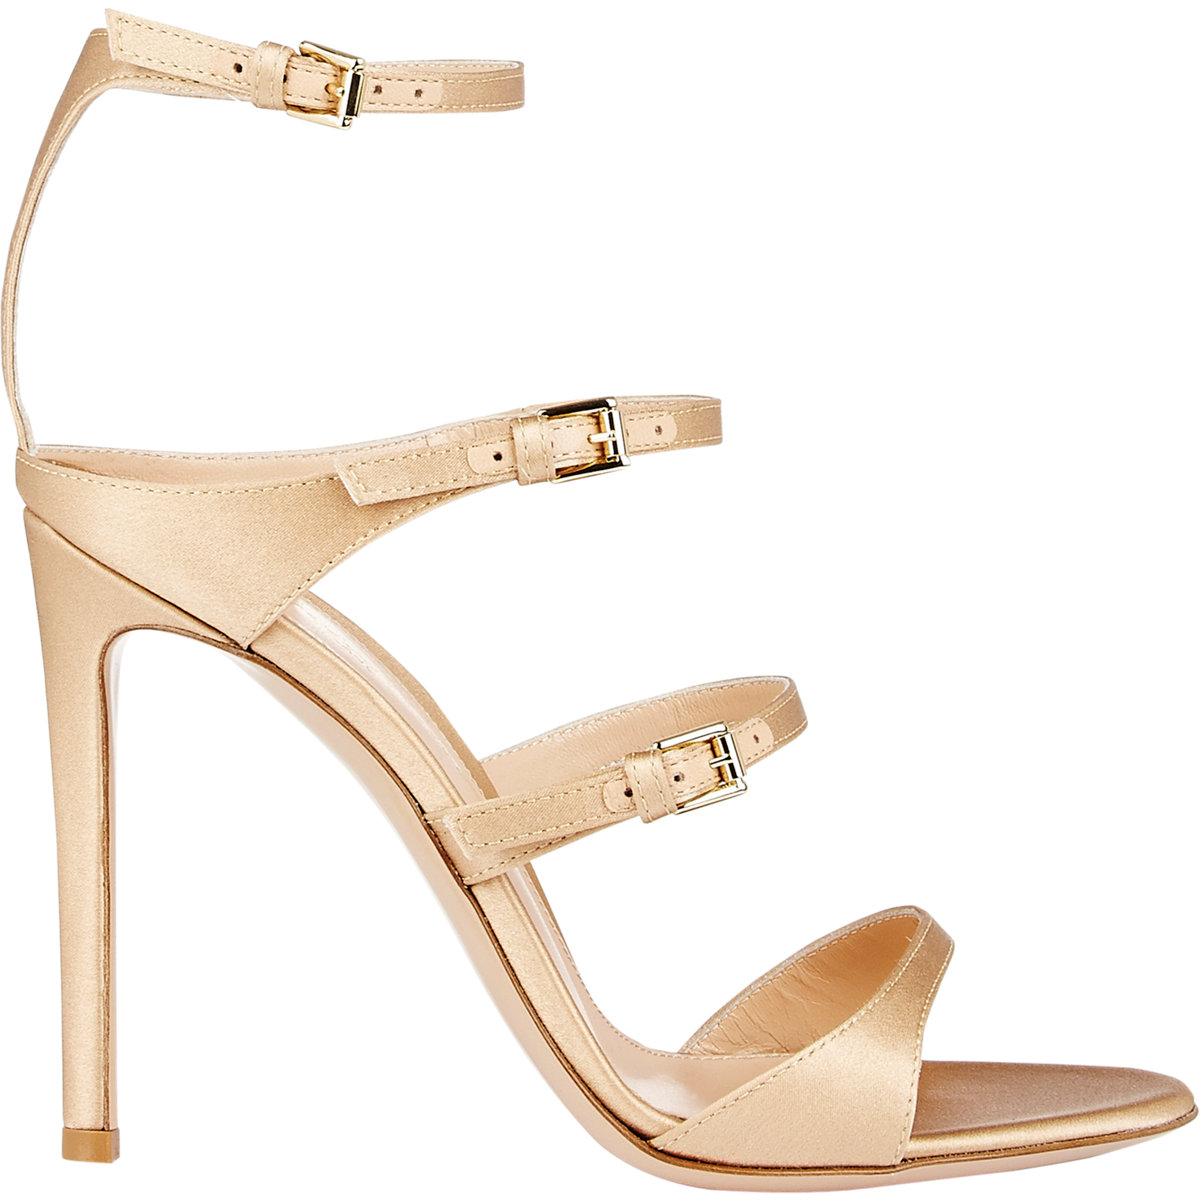 Gianvito Rossi Triple-Strap Sandals at Barneys.com